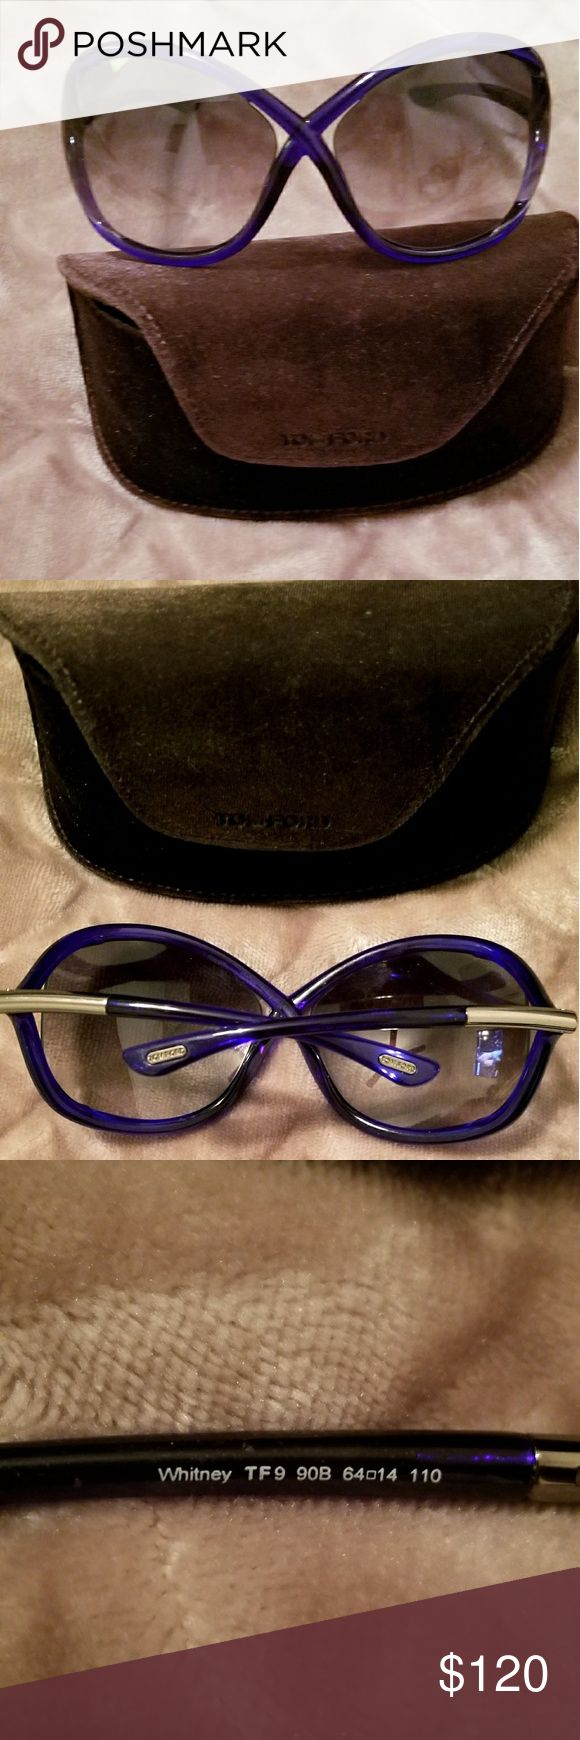 TOM FORD WHITNEY SUNGLASSES ( Authentic) Royal blue Tom Ford sunglasses. Great condition.  Case included. Tom Ford Accessories Glasses